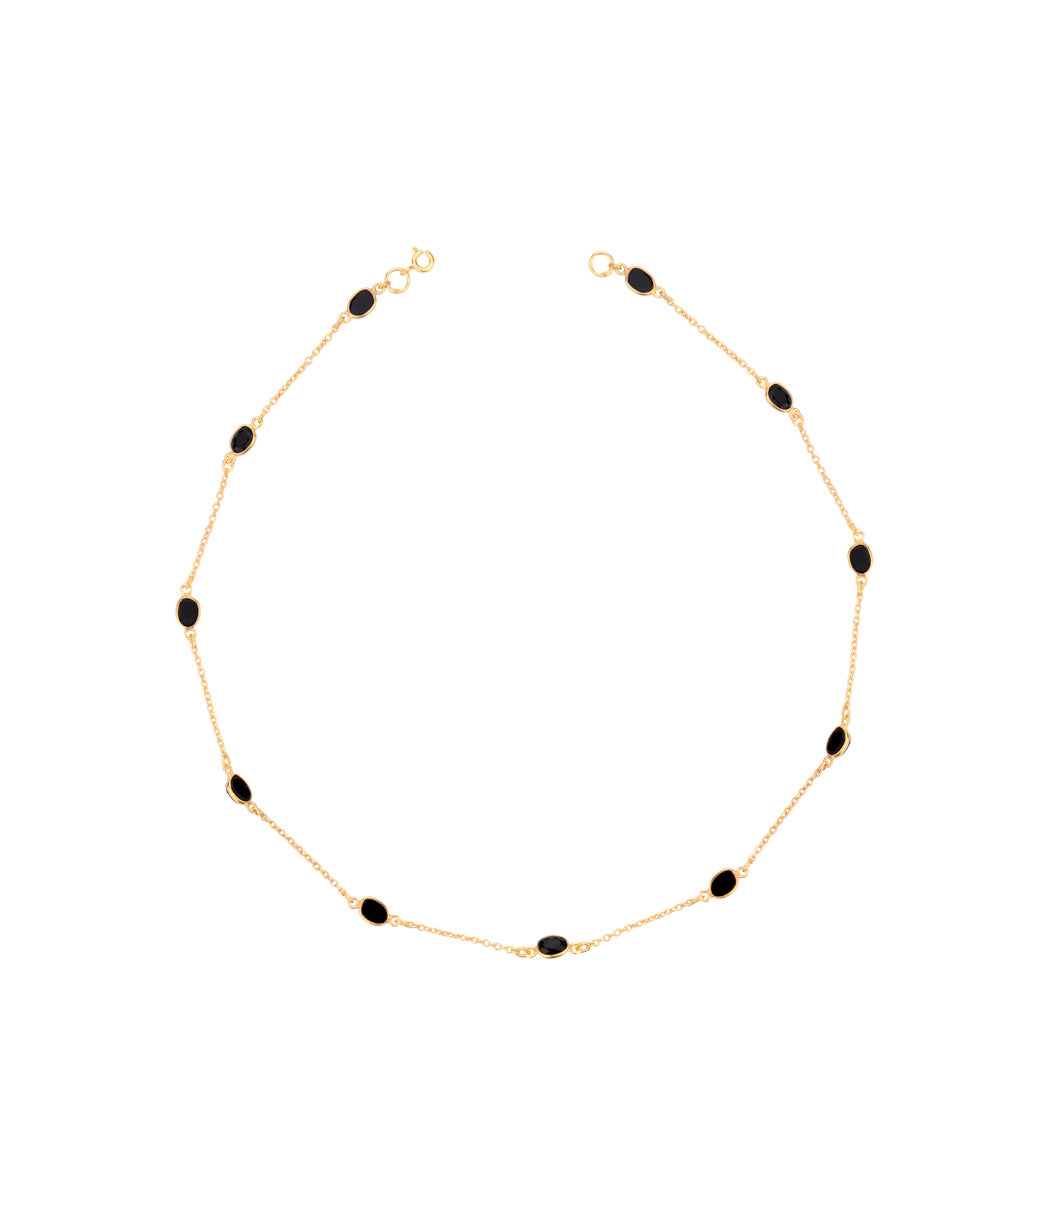 Sable Onyx Necklace